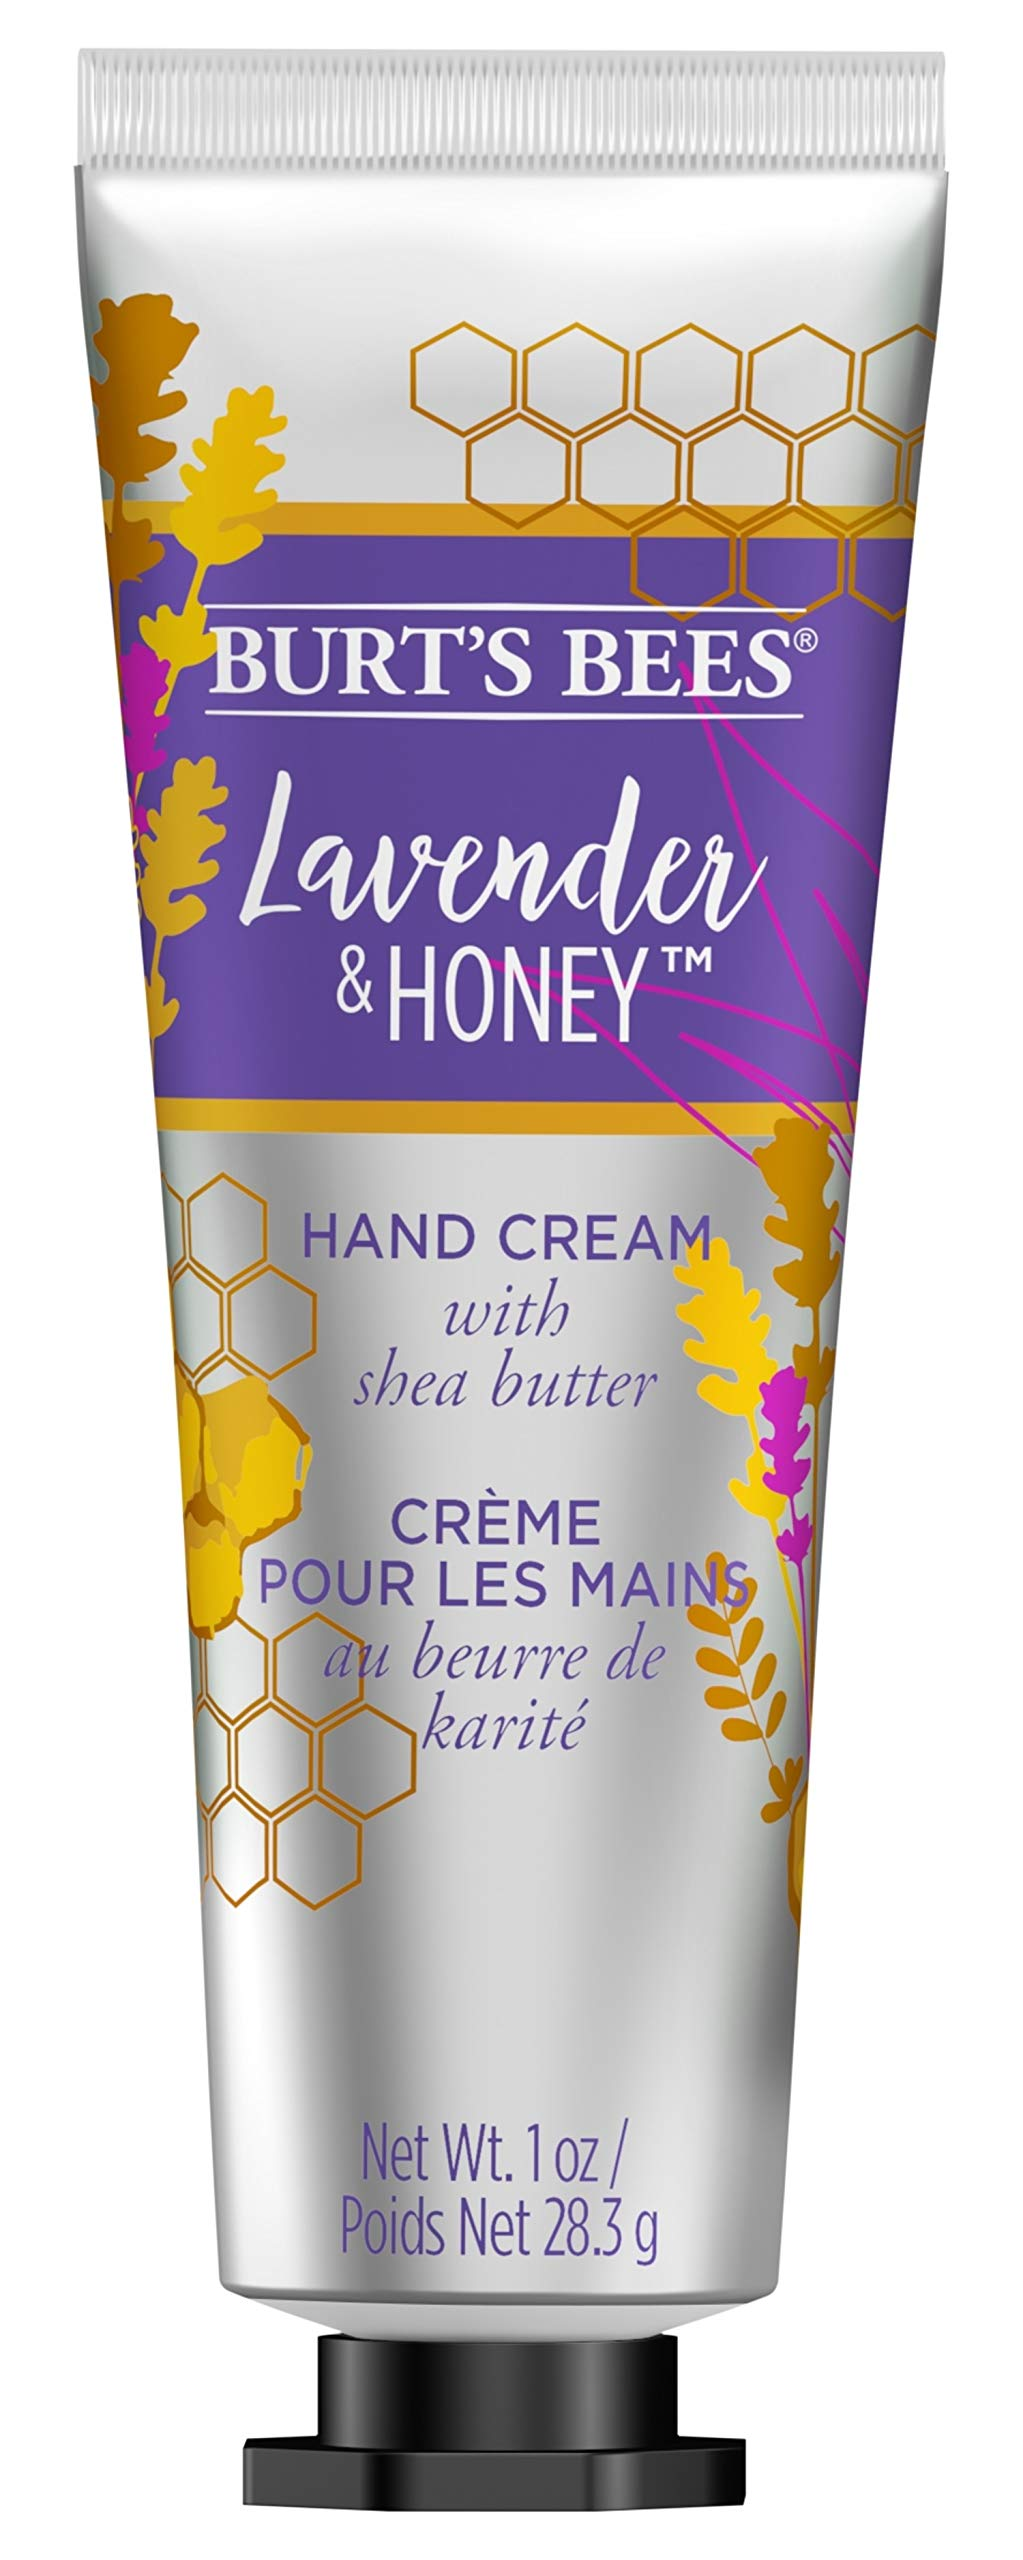 Burts Bees Lavender & Honey Hand Cream with Shea Butter, 1 Oz (Package May Vary)